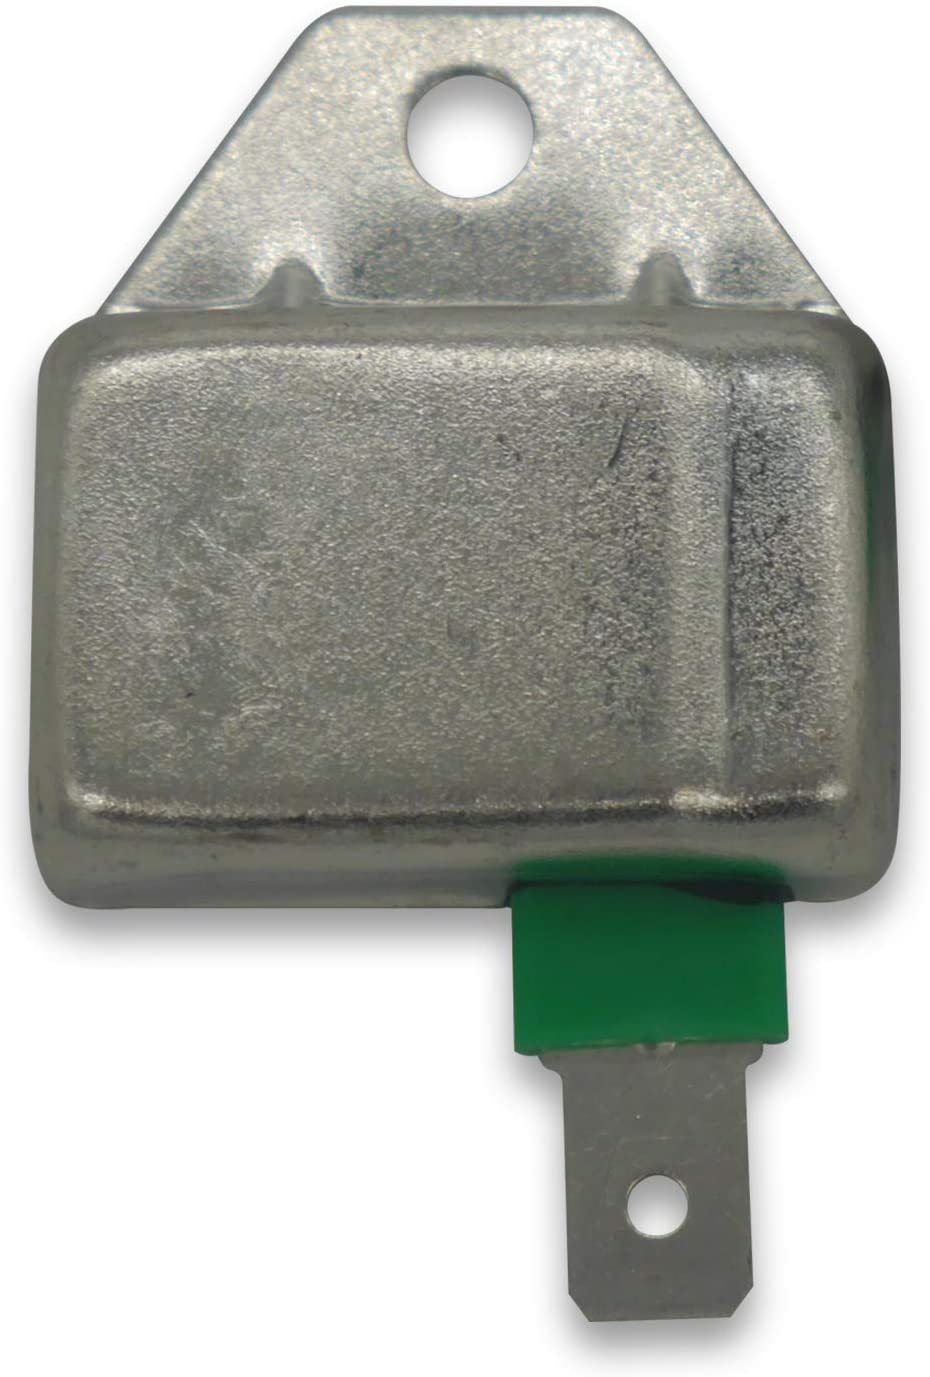 DEF Igniter Ignition Module 21119-2161 Ranking integrated 1st place Replaces Kawasaki 2111921 El Paso Mall